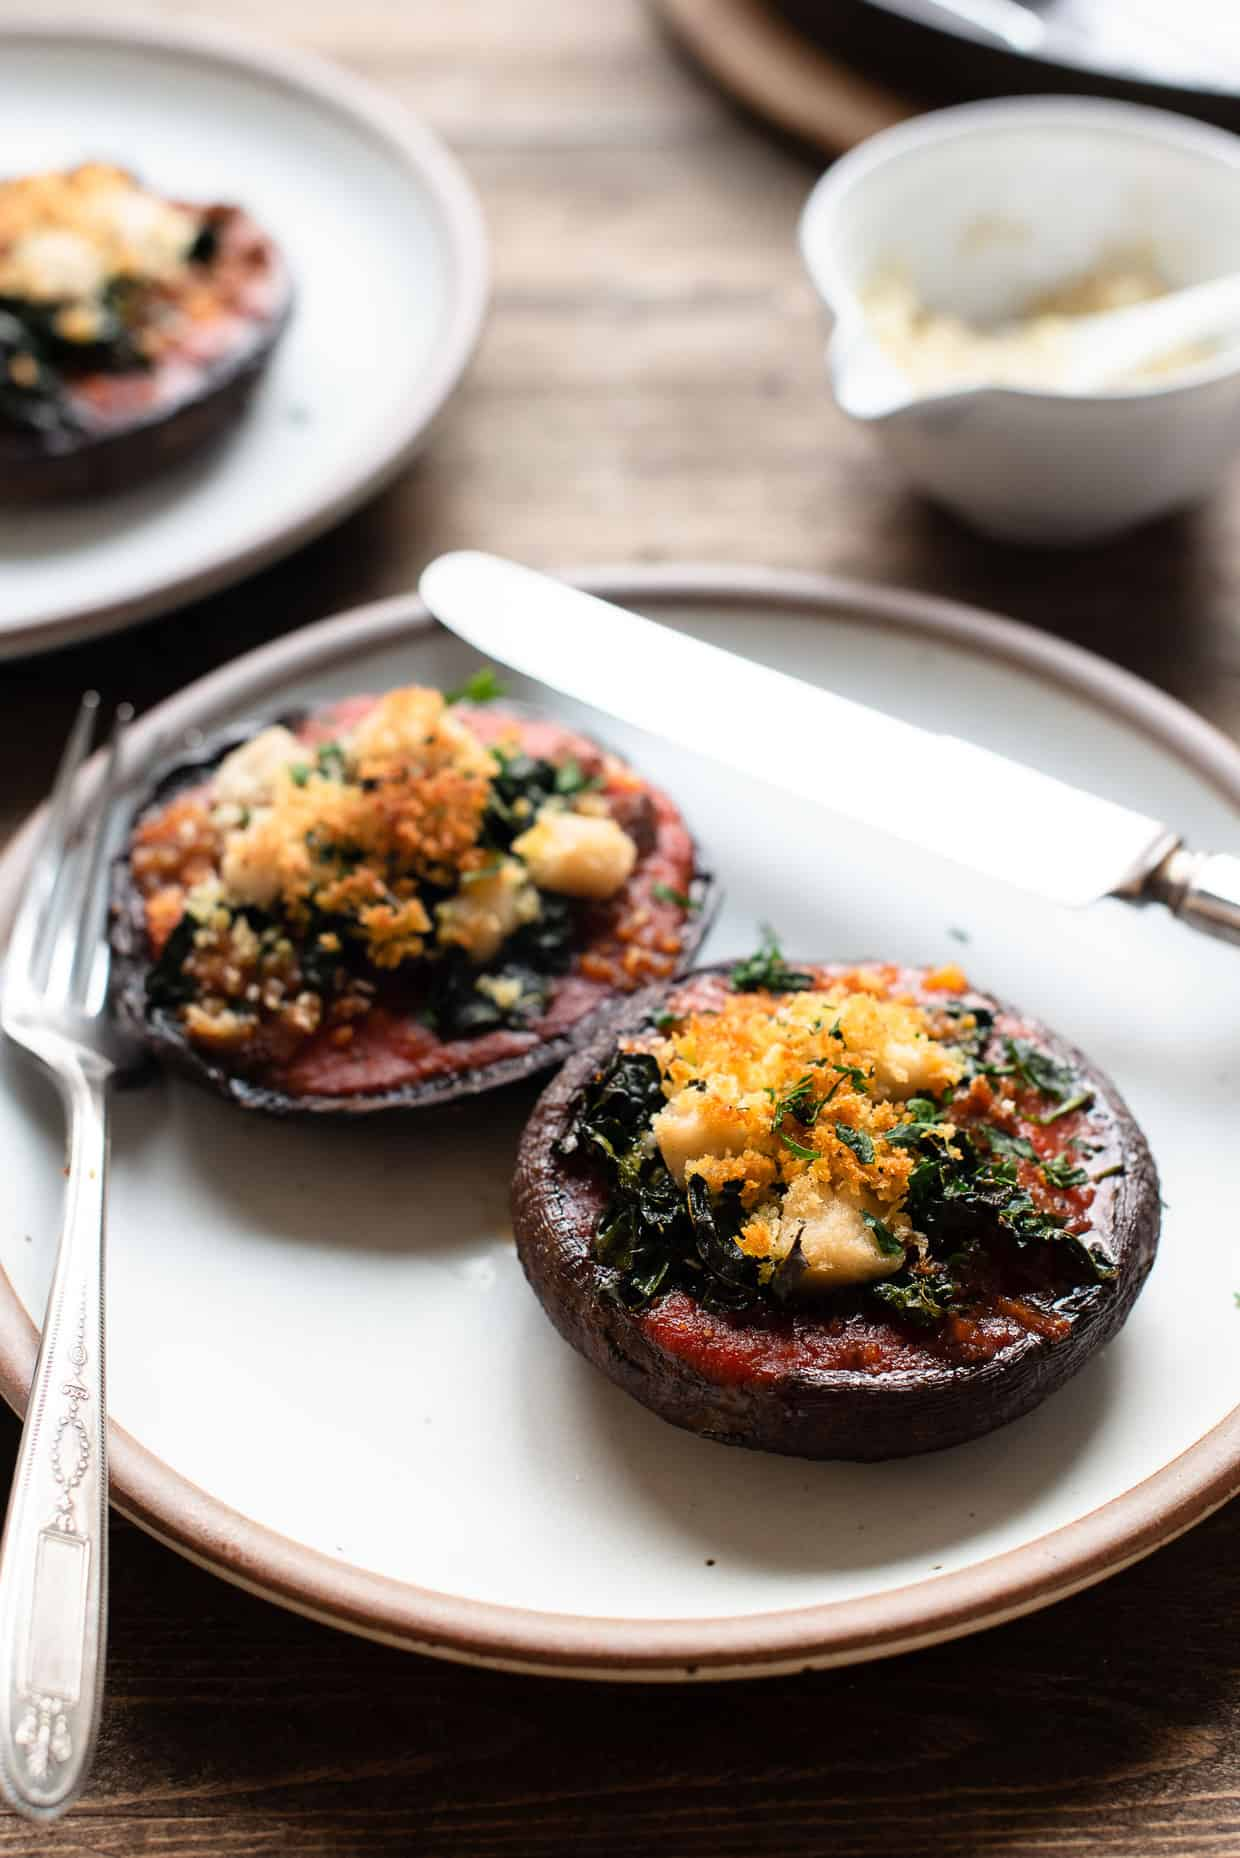 Stuffed Portobello Mushrooms With Garlicky Kale Kitchen Confidante